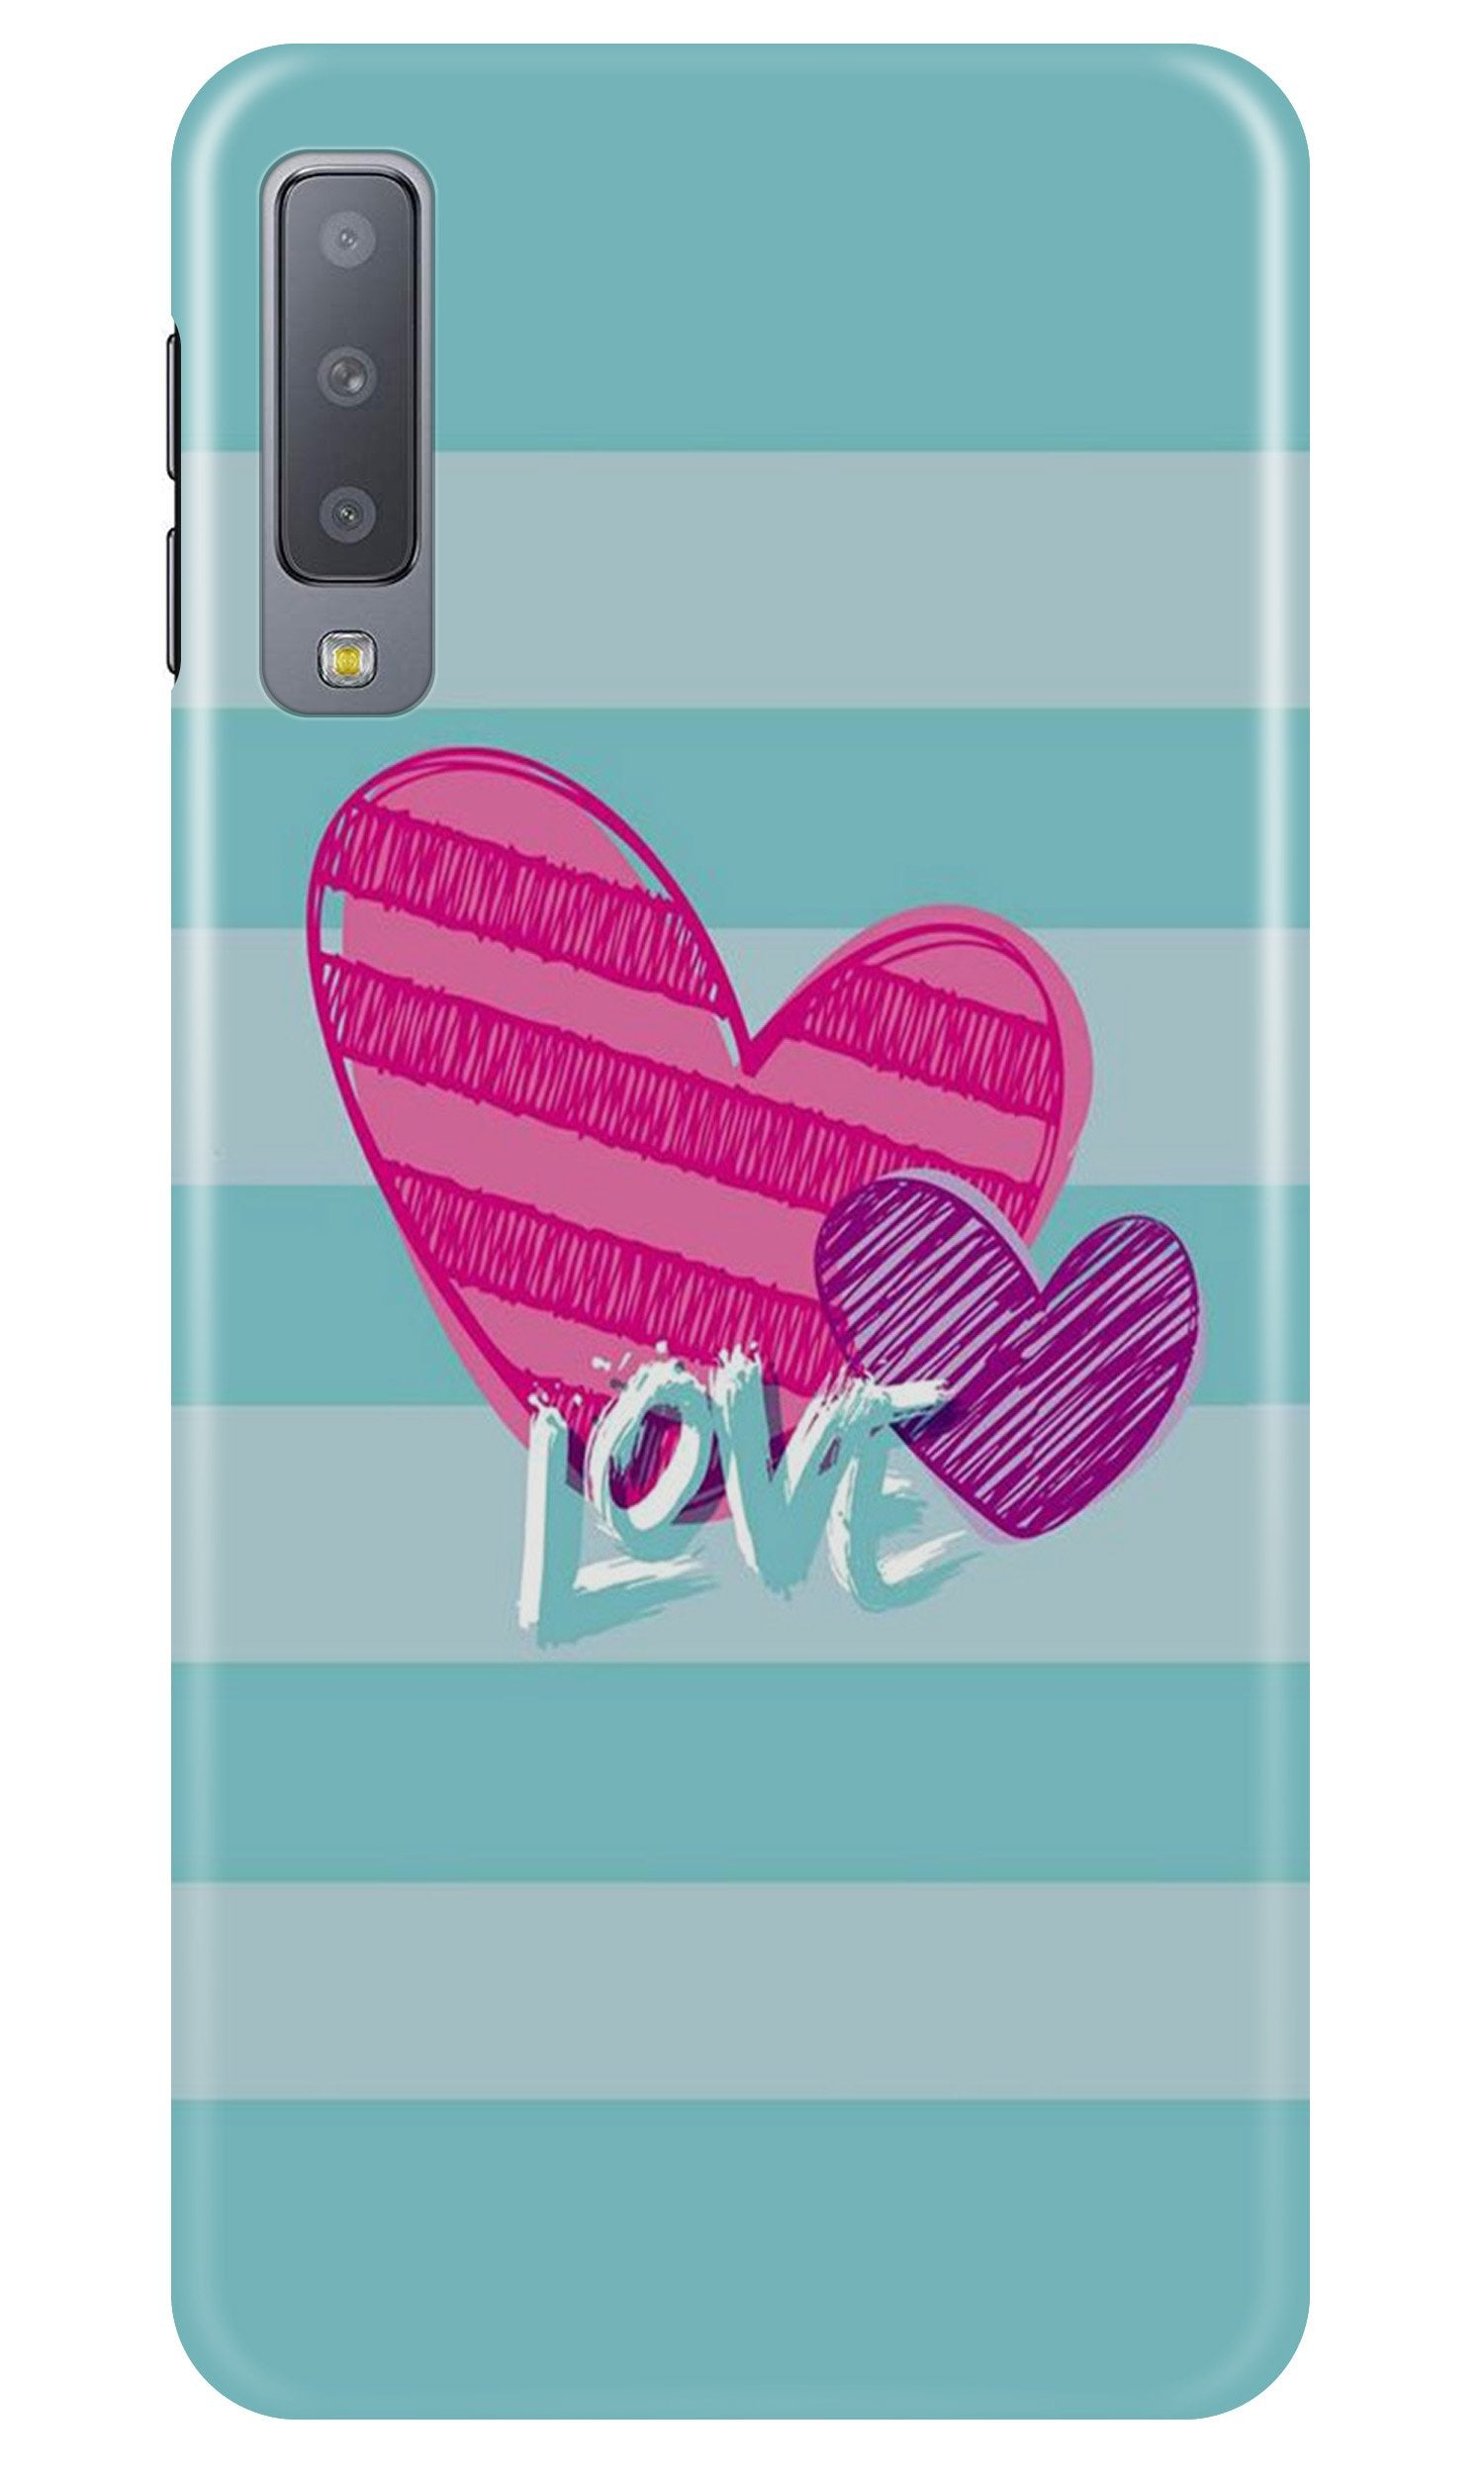 Love Case for Samsung Galaxy A50 (Design No. 299)